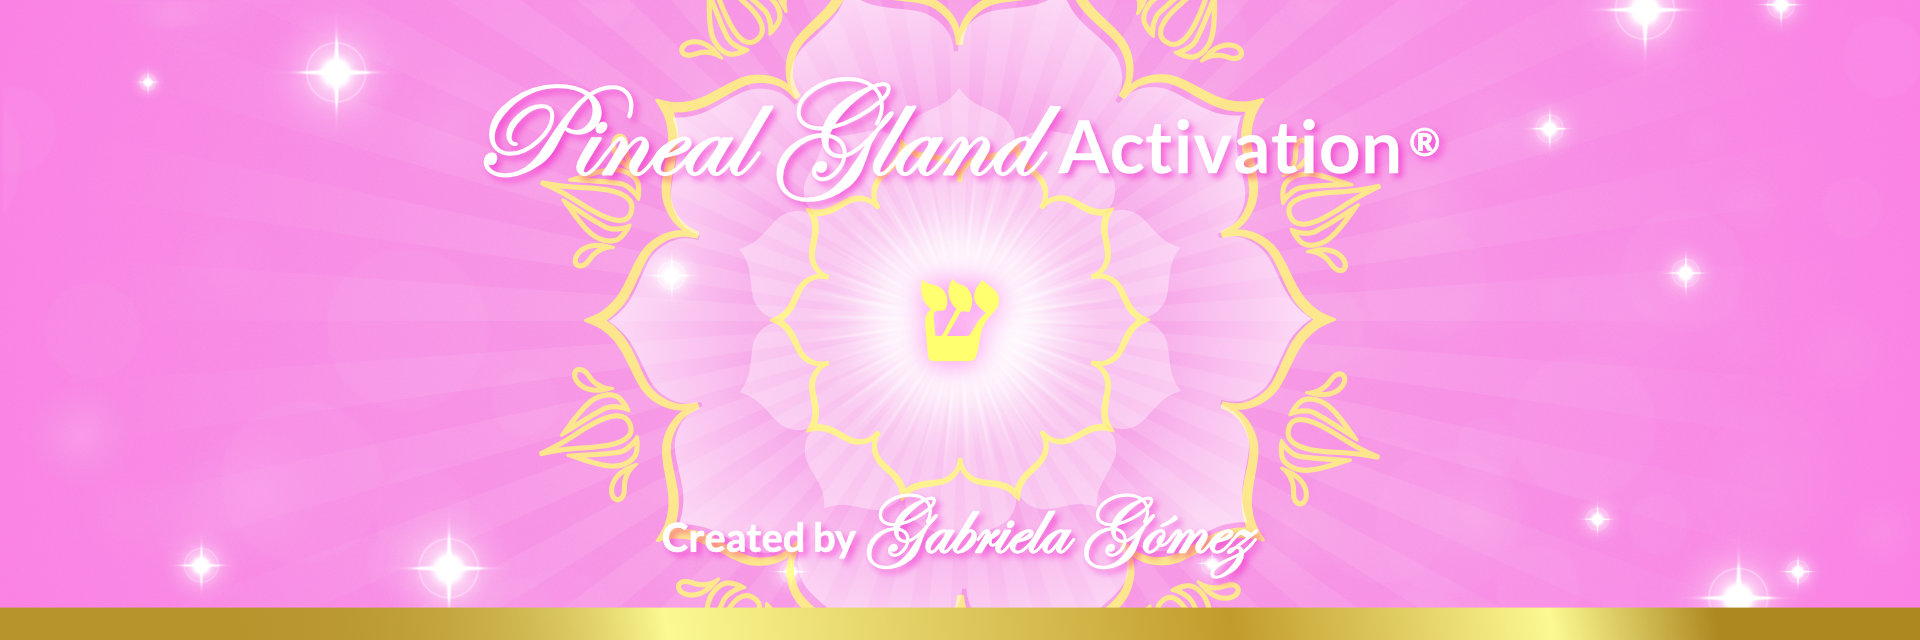 Pineal Gland Activation®